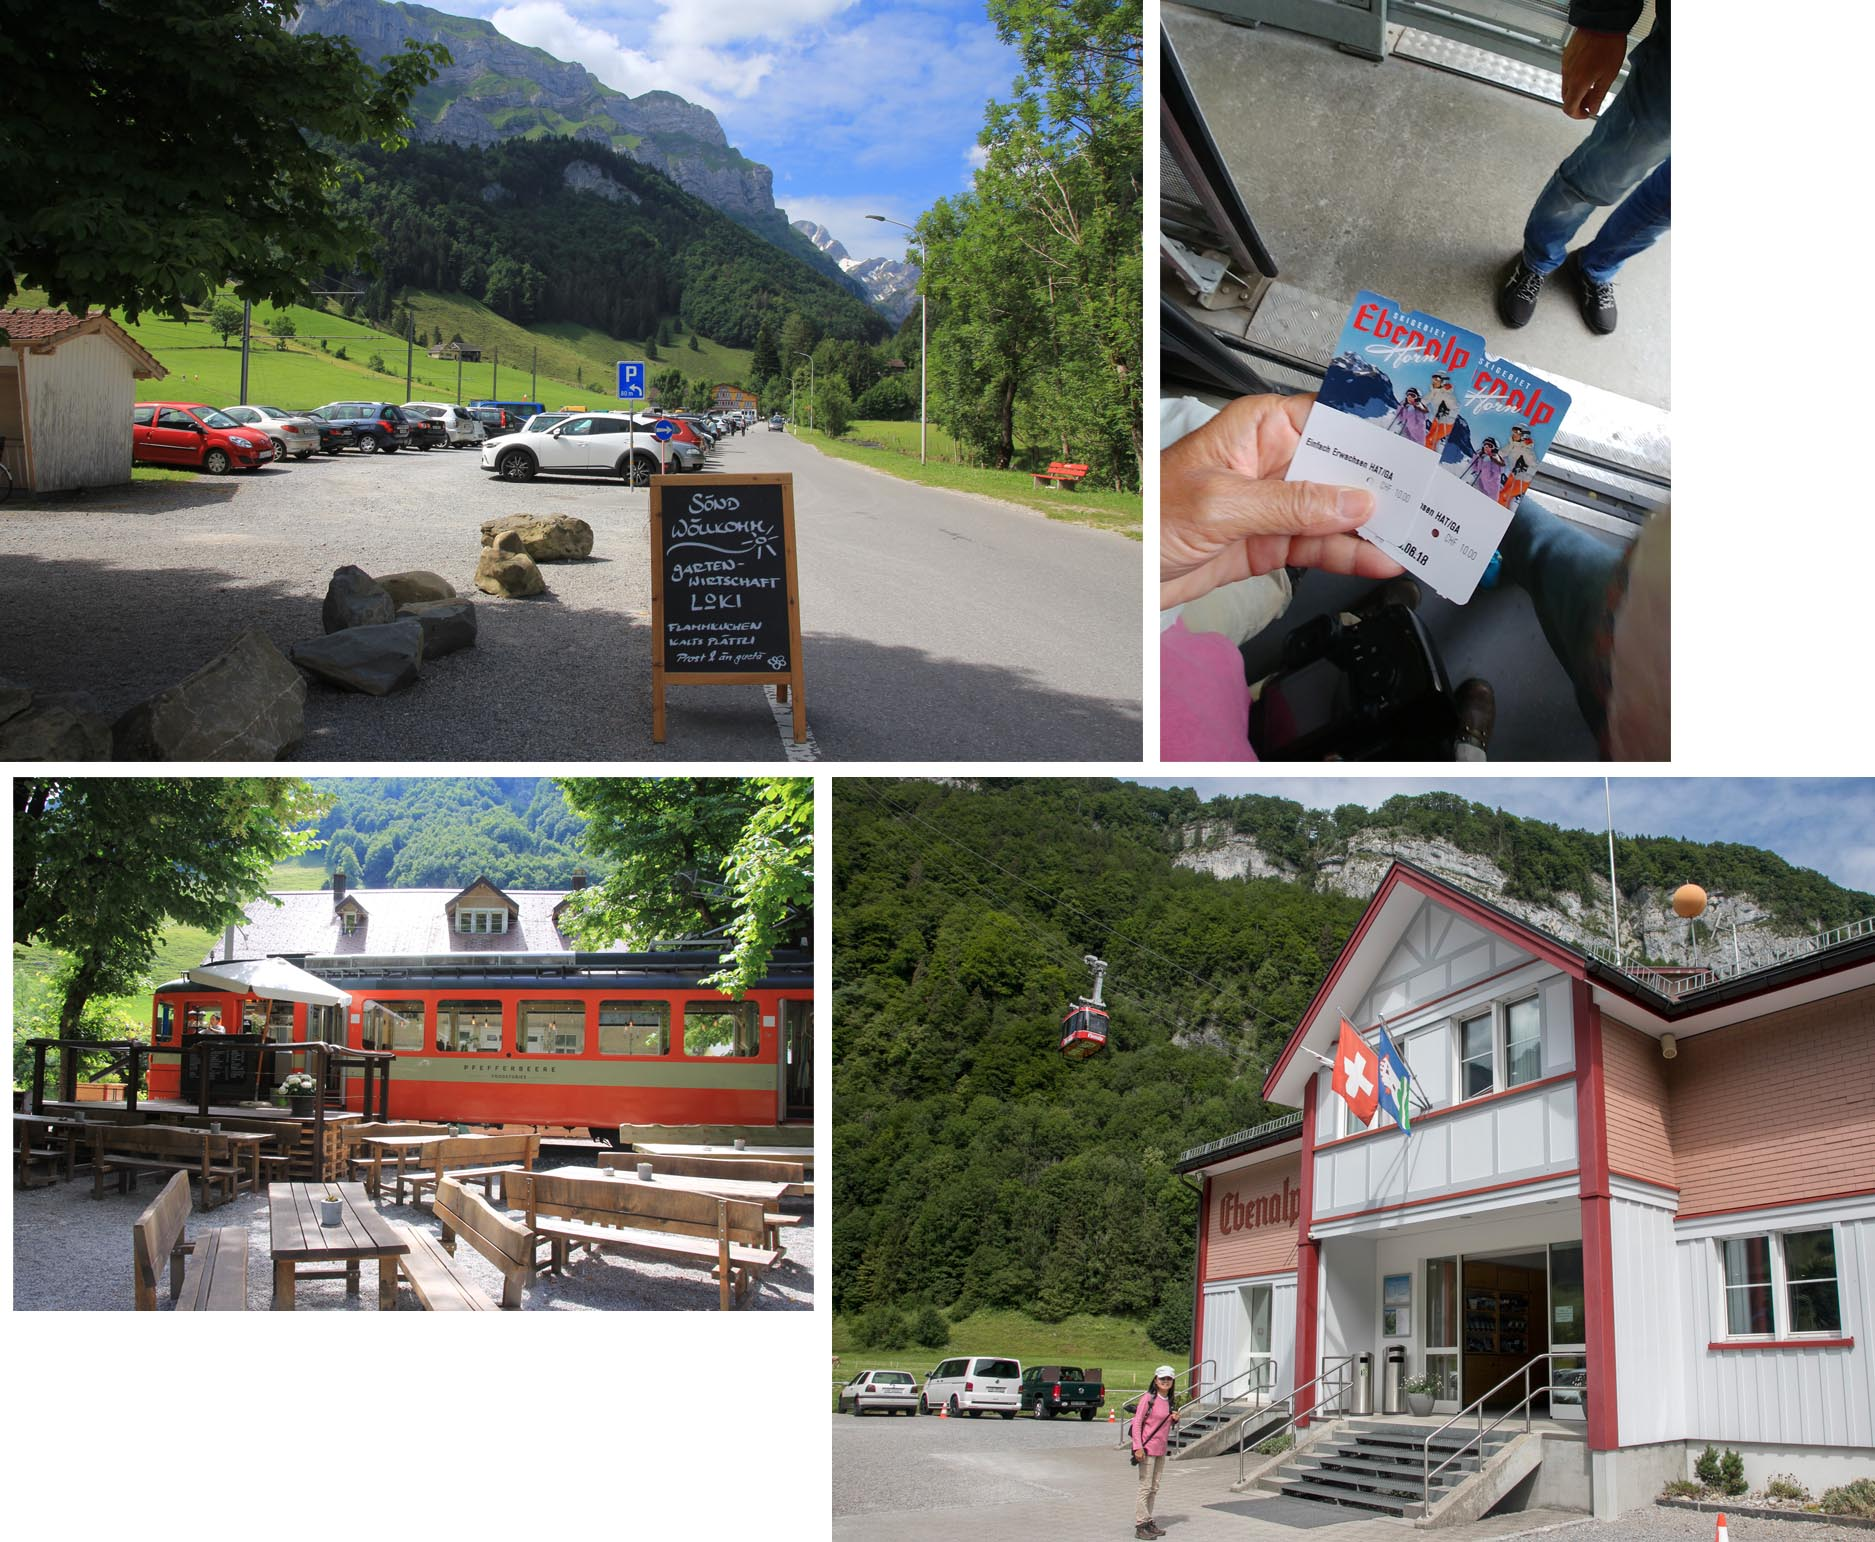 Ebenalp free parking, cafe, cable car station